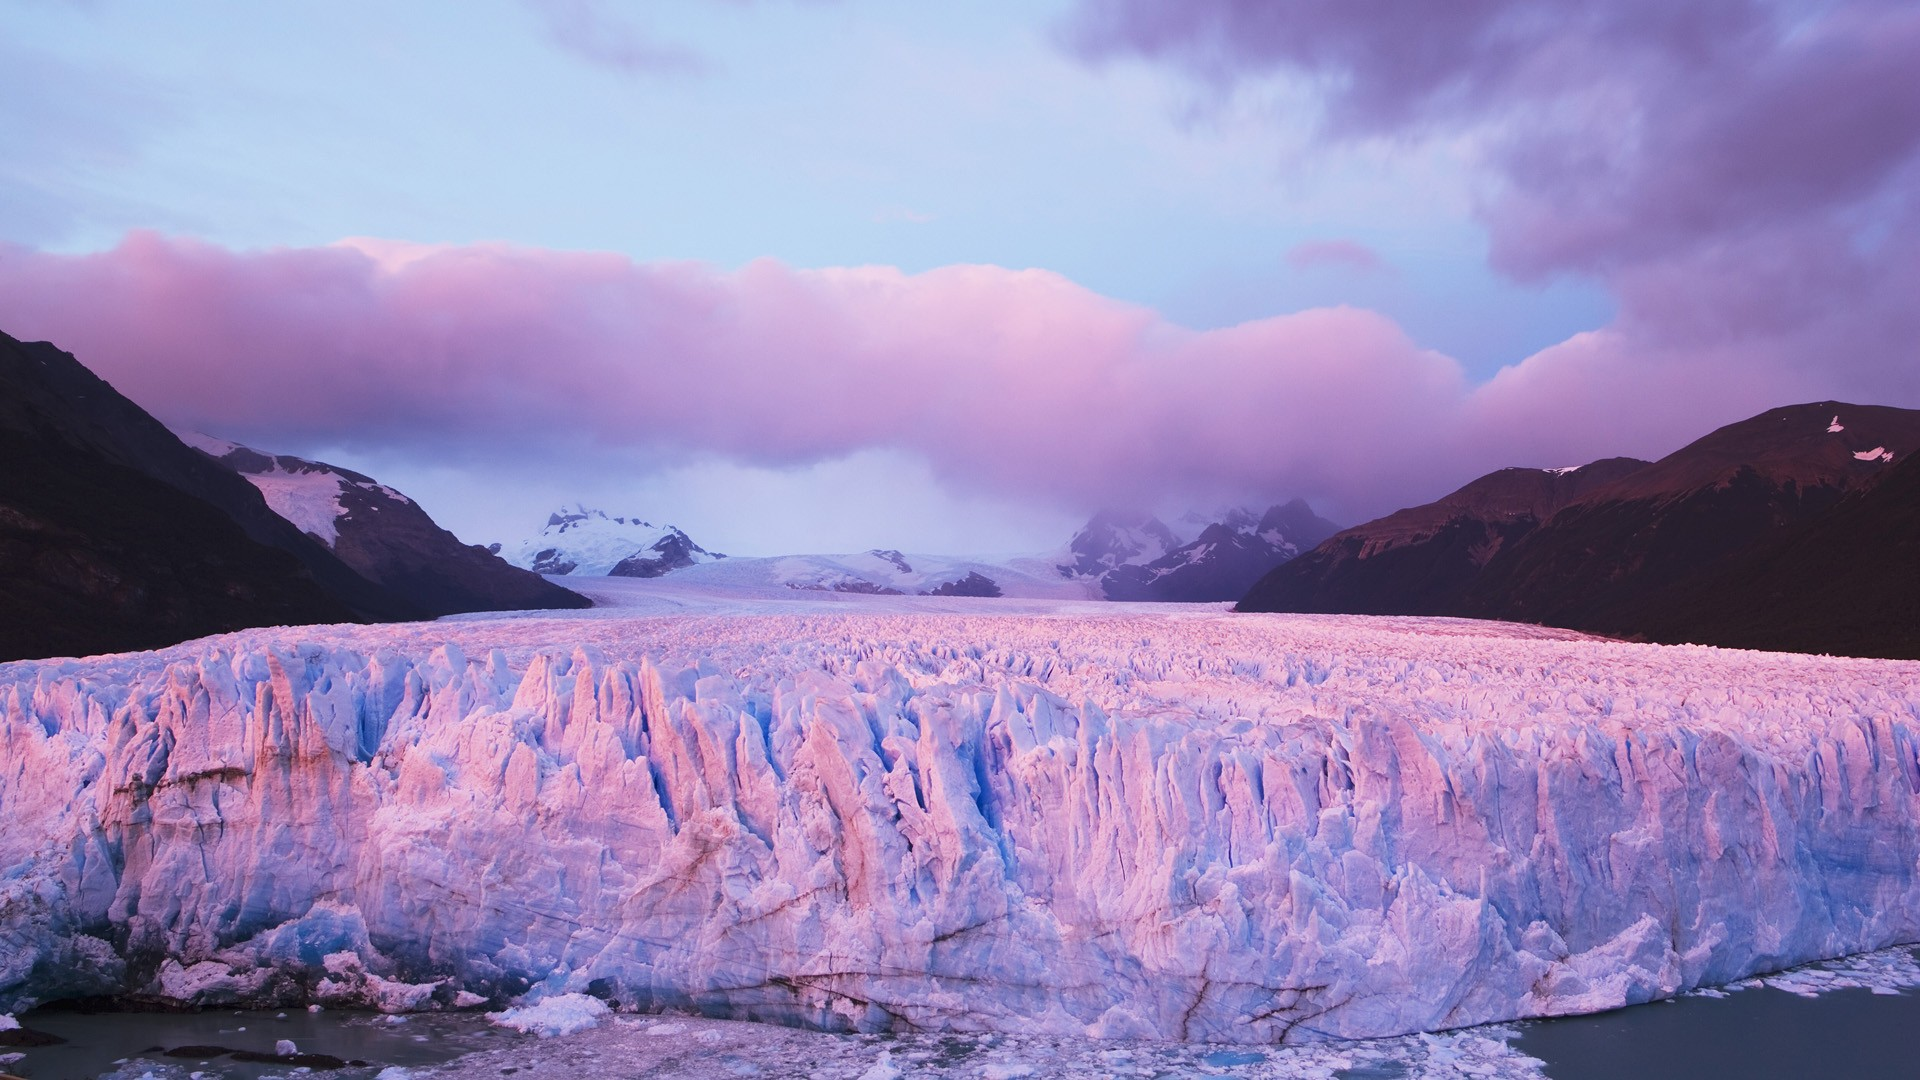 glacier wallpaper purple